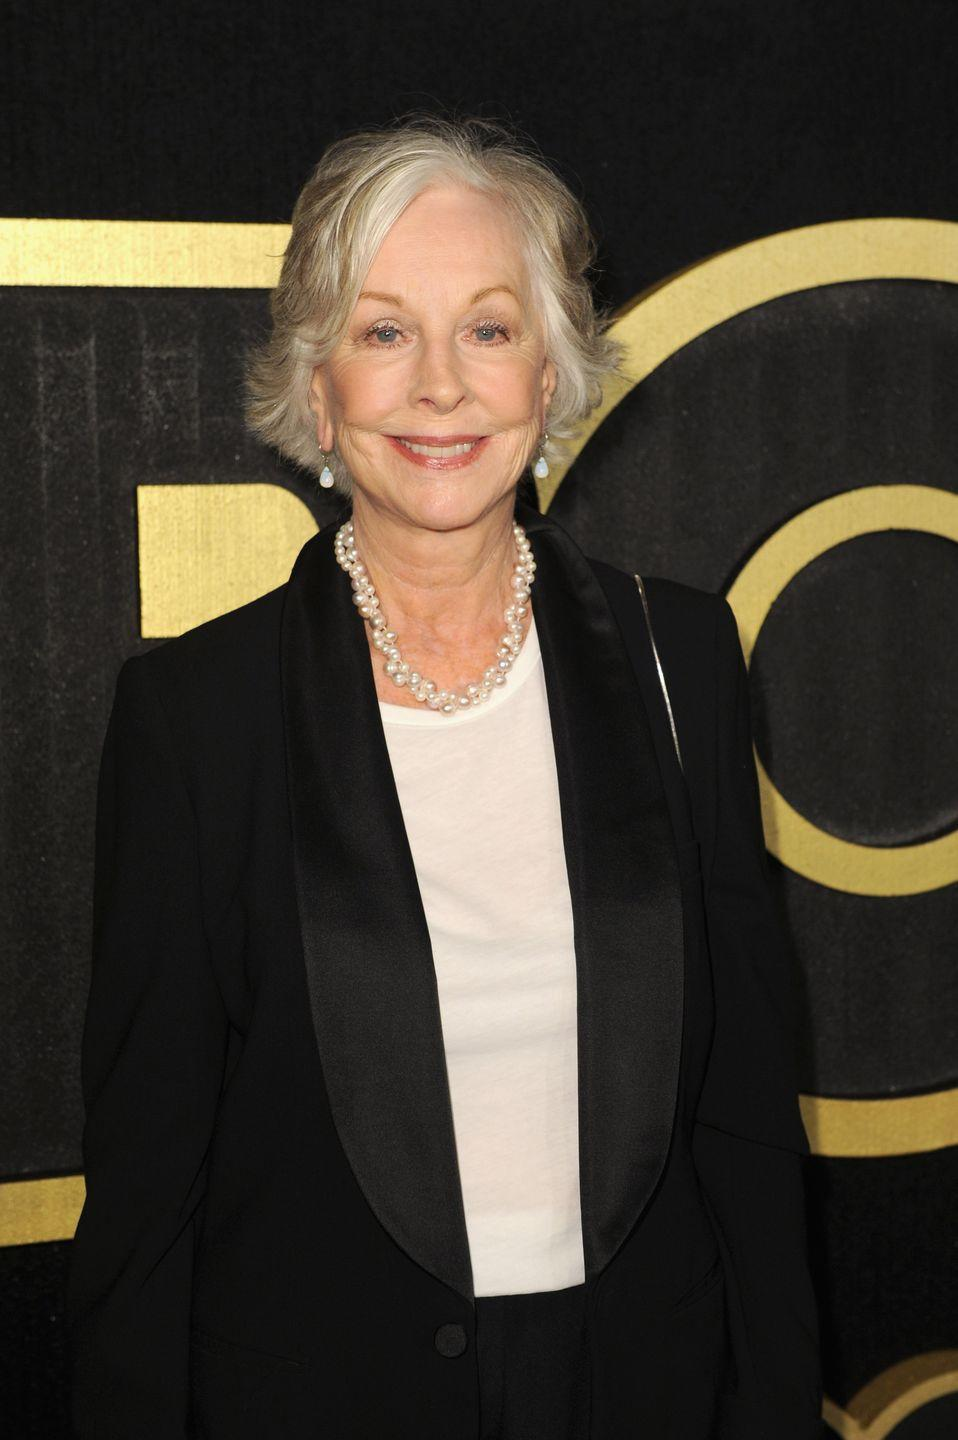 <p>The actress has worked consistently since the end of the series. In 2018, after six nominations, she finally won an Emmy for her performance in <em>Break a Hip. </em></p>